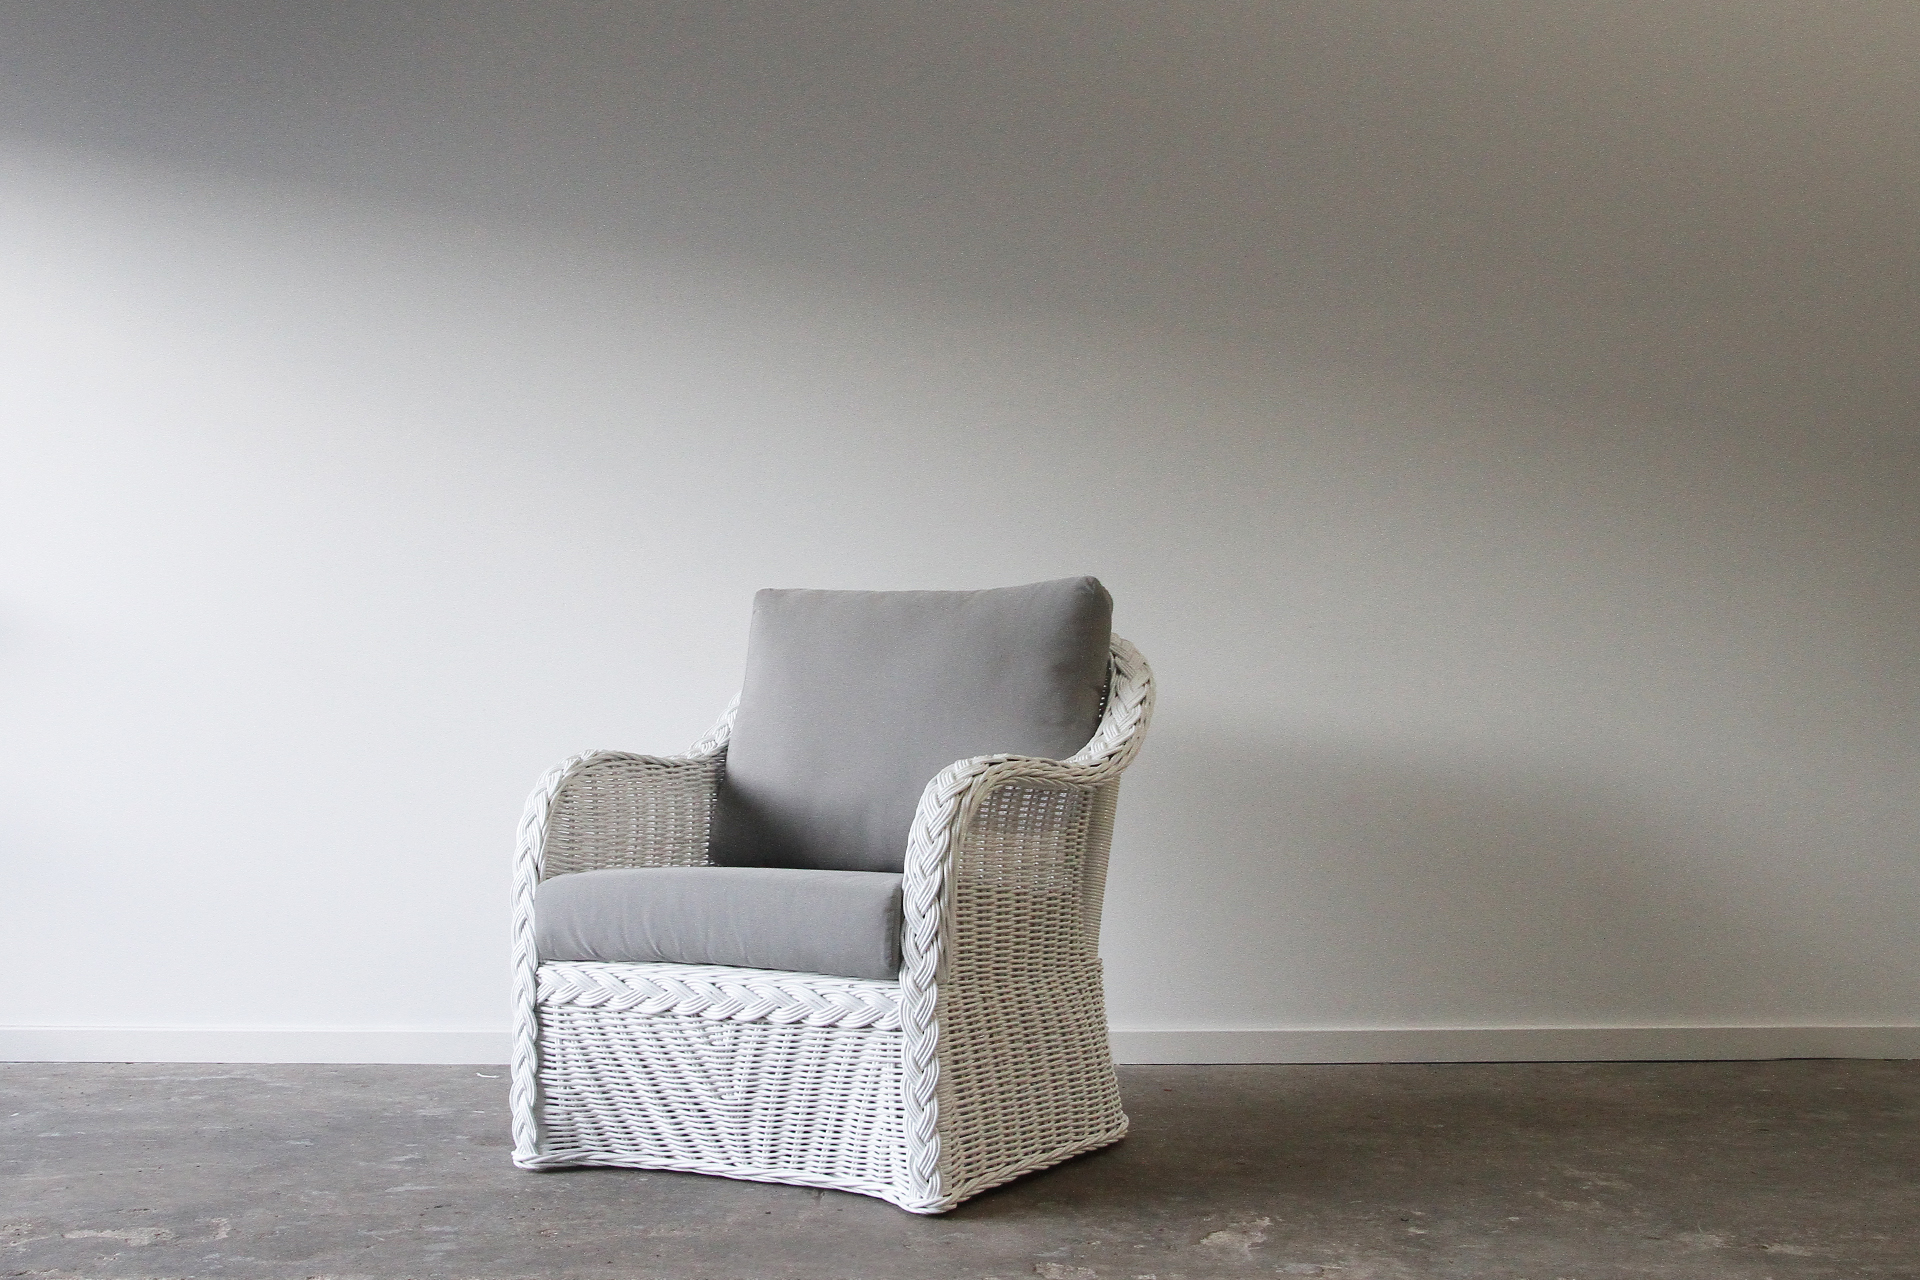 White wicker cane armchair